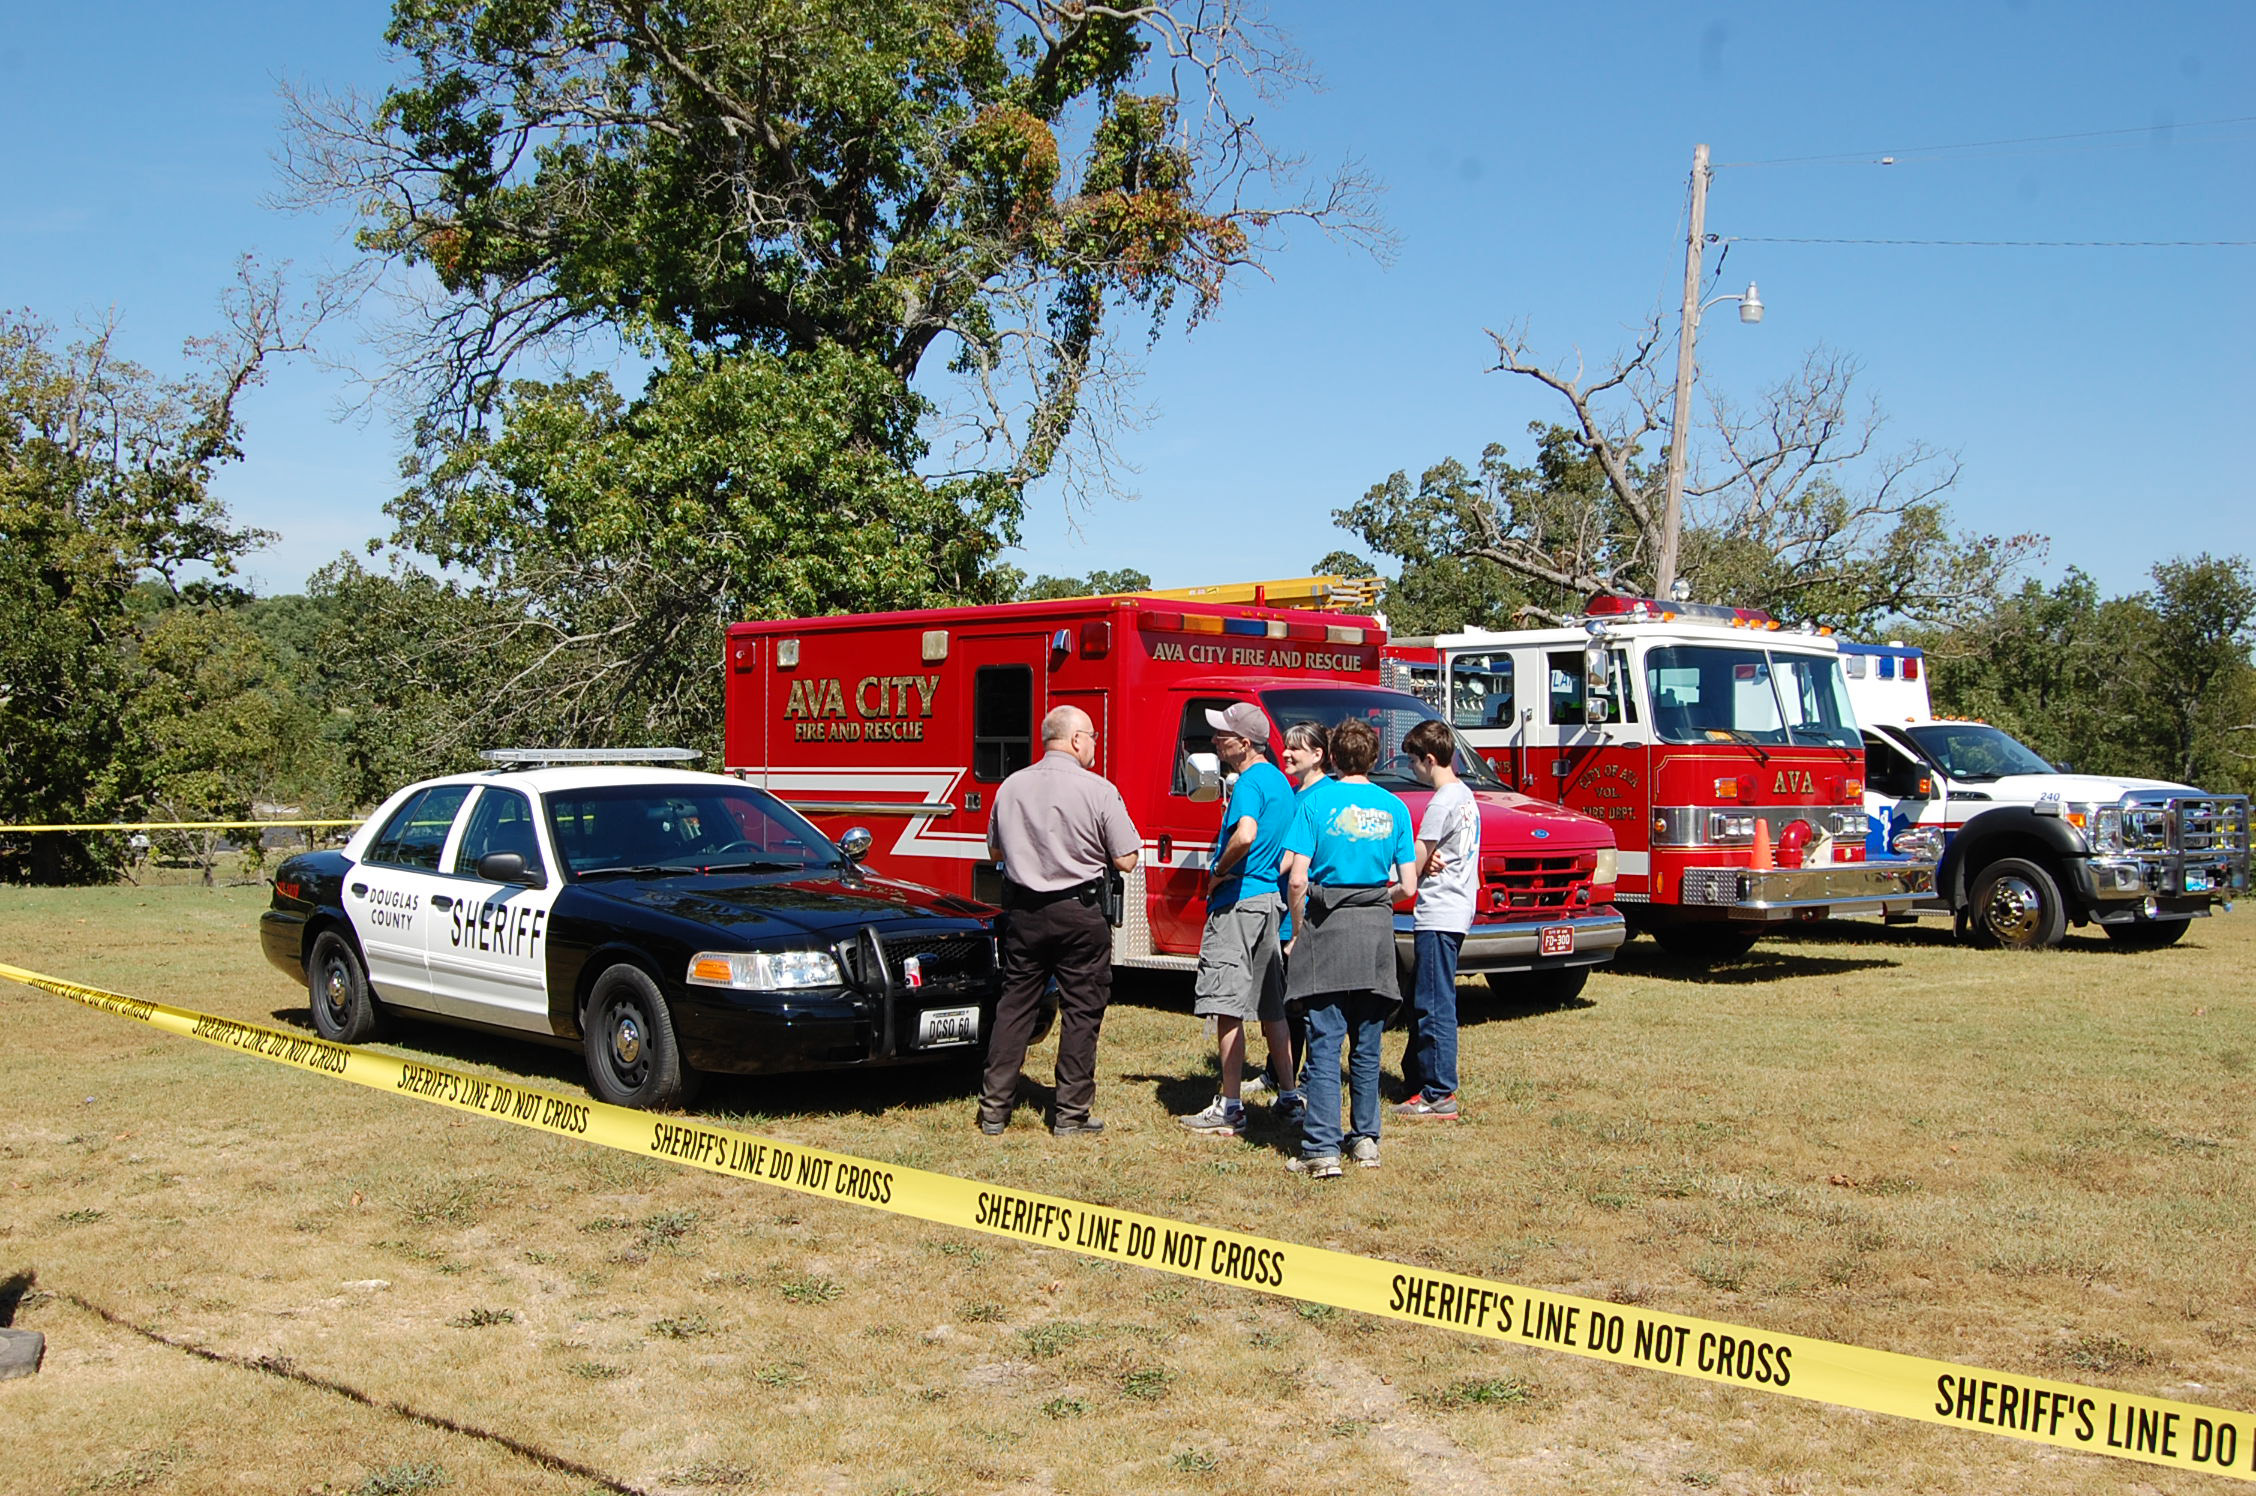 """The Douglas County Sheriff's Department, Ava Fire and Rescue, and Cox Health/Ava Area Ambulance displayed emergency vehicles at Options Pregnancy Centers """"A Day In The Park."""""""